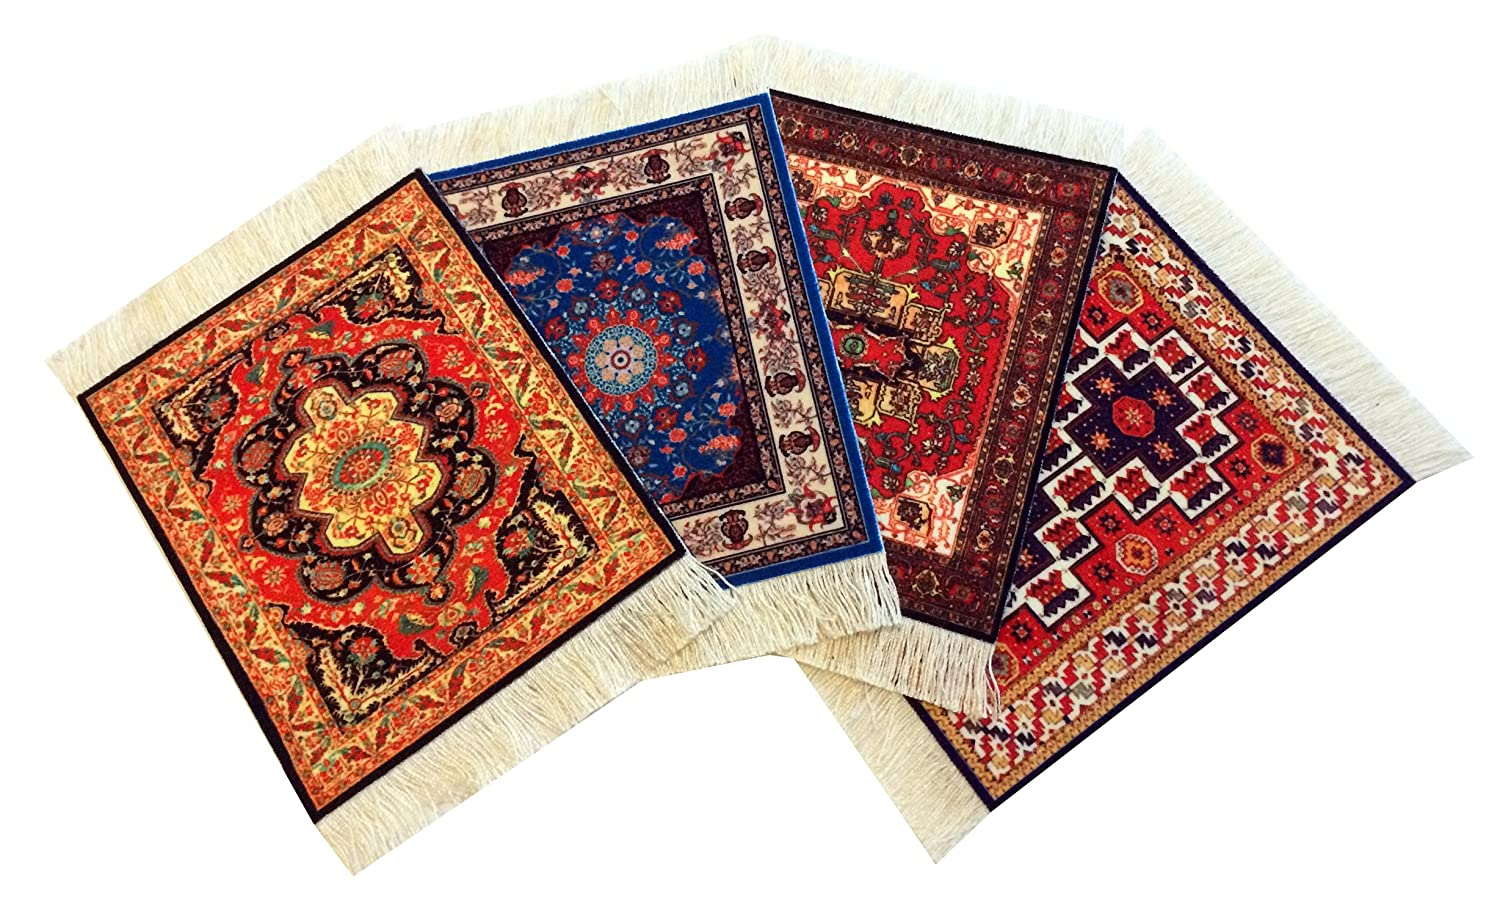 (Mix-2) Set of 4 Rug Table Coasters Persian Design Fabric Carpet Drink Mats (Mix-2) B076YQ63N1Mix-2